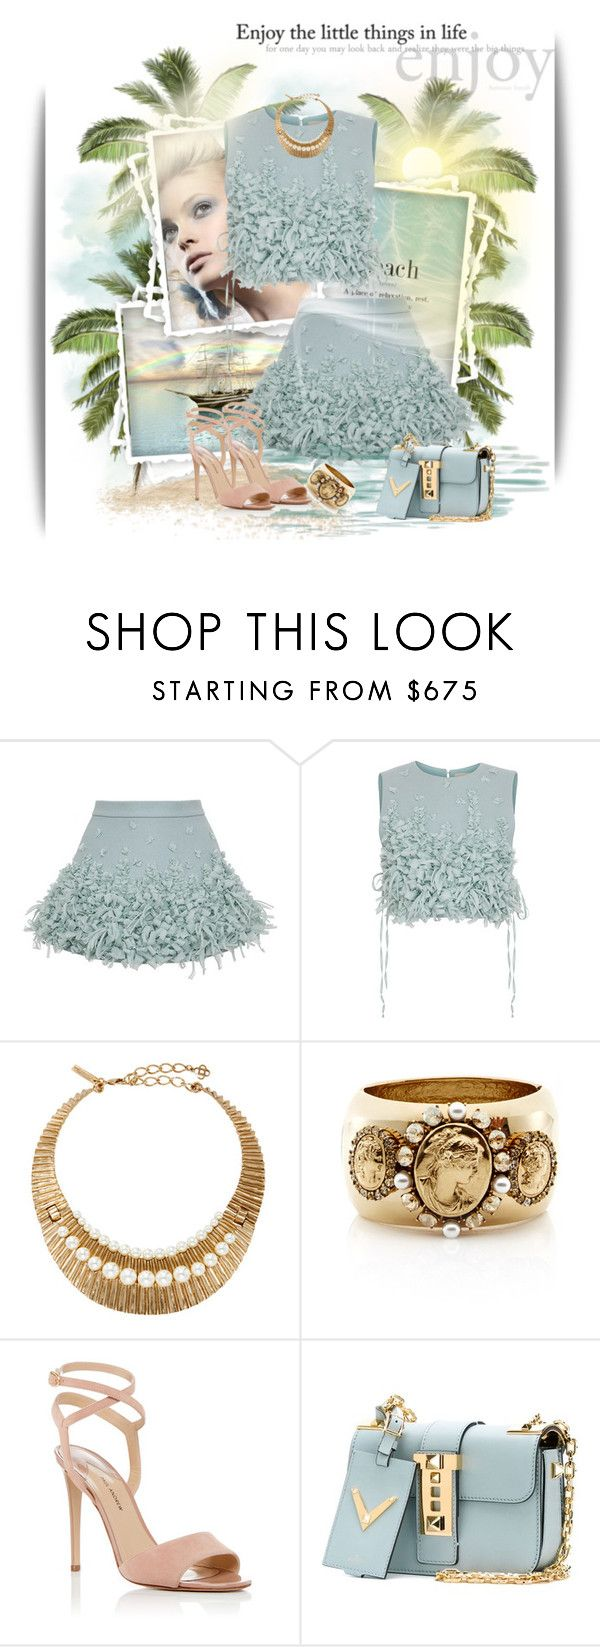 """""""Enjoy the little things in life"""" by qiou ❤ liked on Polyvore featuring VesseL, Ruban, Paul Andrew and Valentino"""